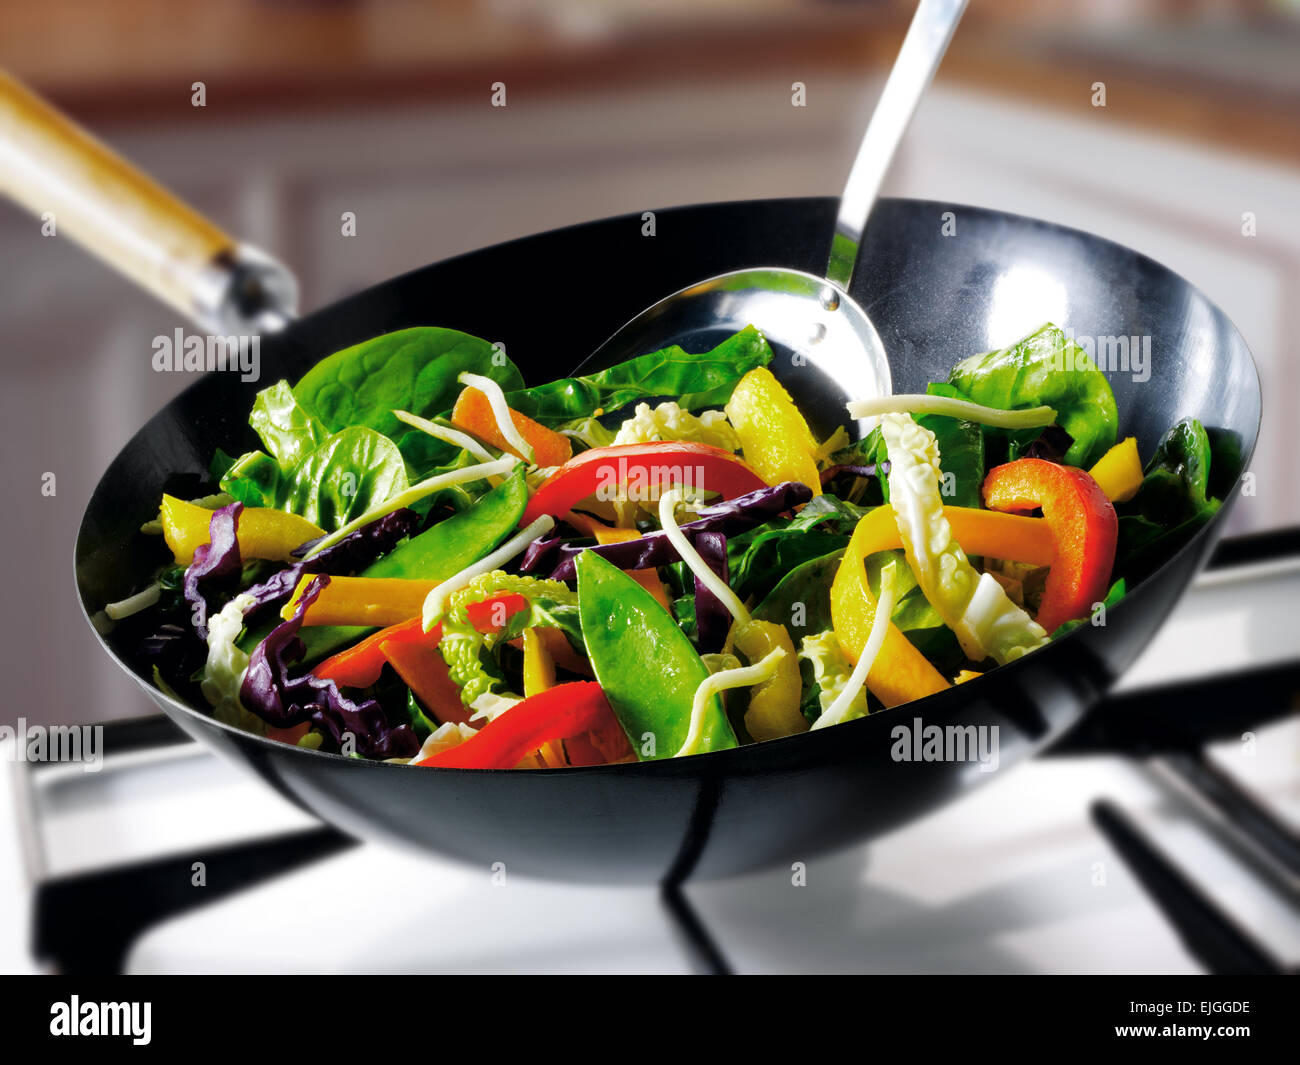 Stir fry vegetables being cooked in a wok - Stock Image